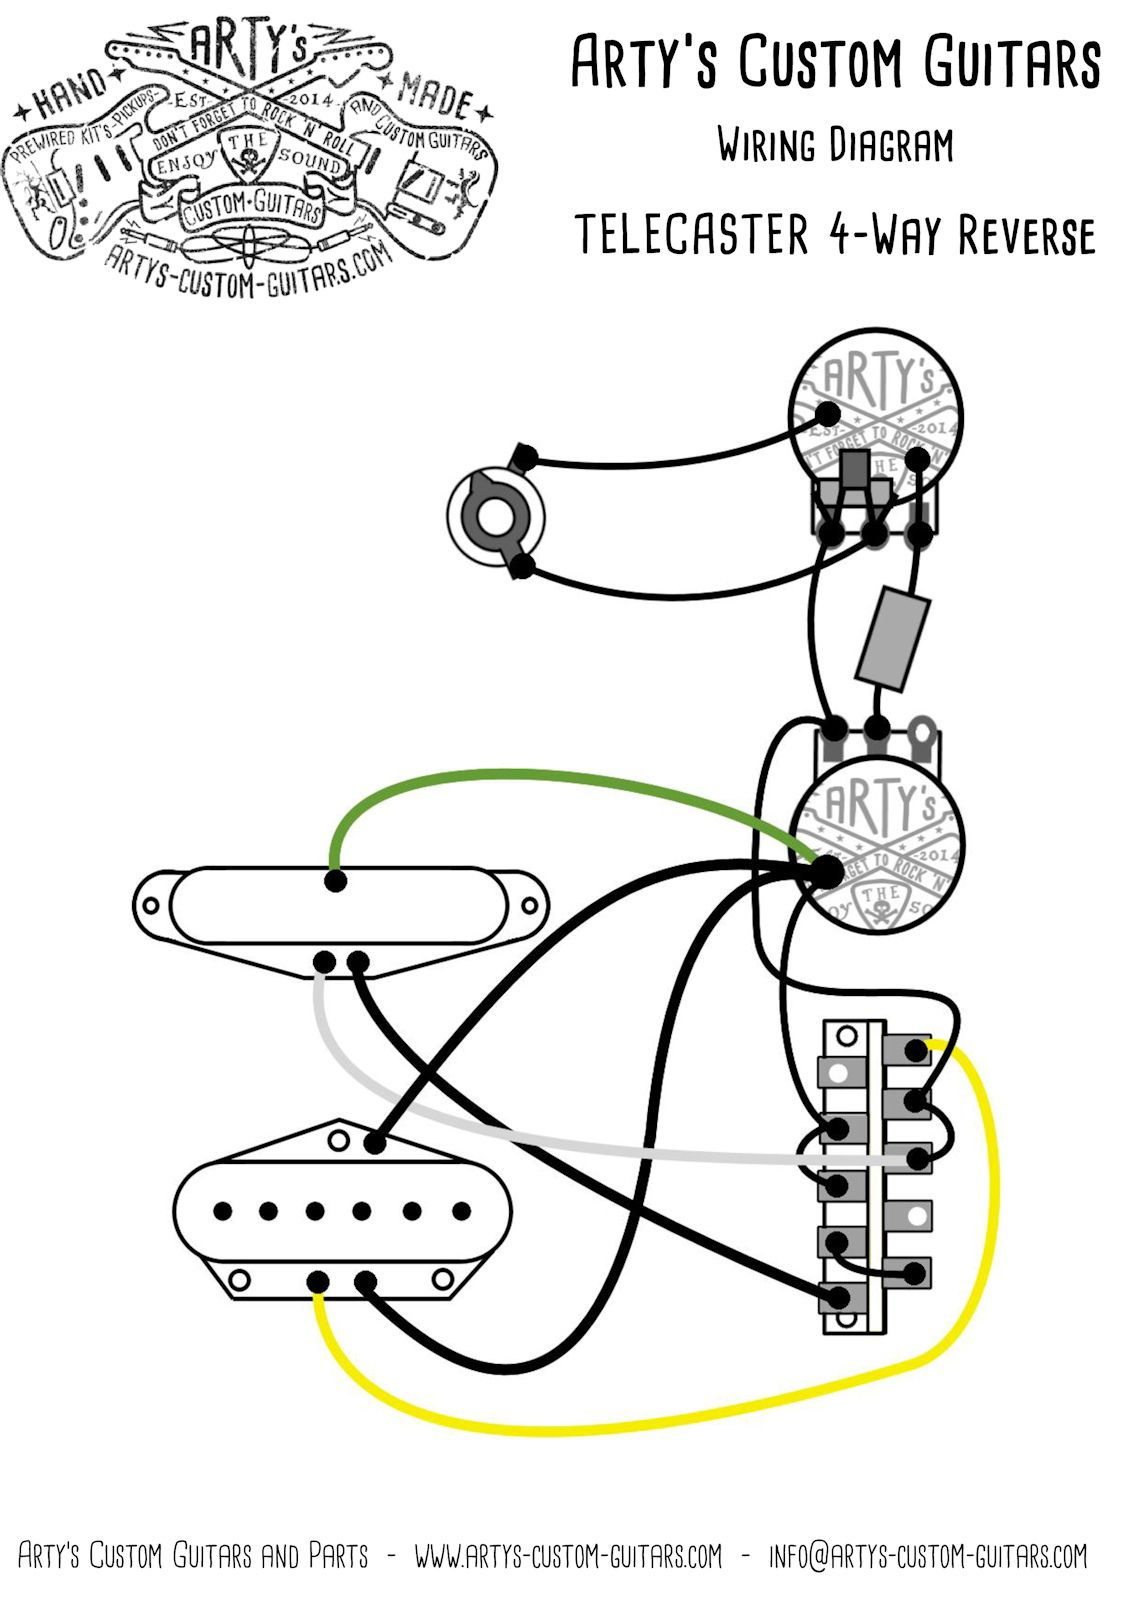 arty s custom guitars 4 way reverse control premium vintage pre wired prewired kit wiring assembly harness artys tele telecaster [ 1132 x 1600 Pixel ]